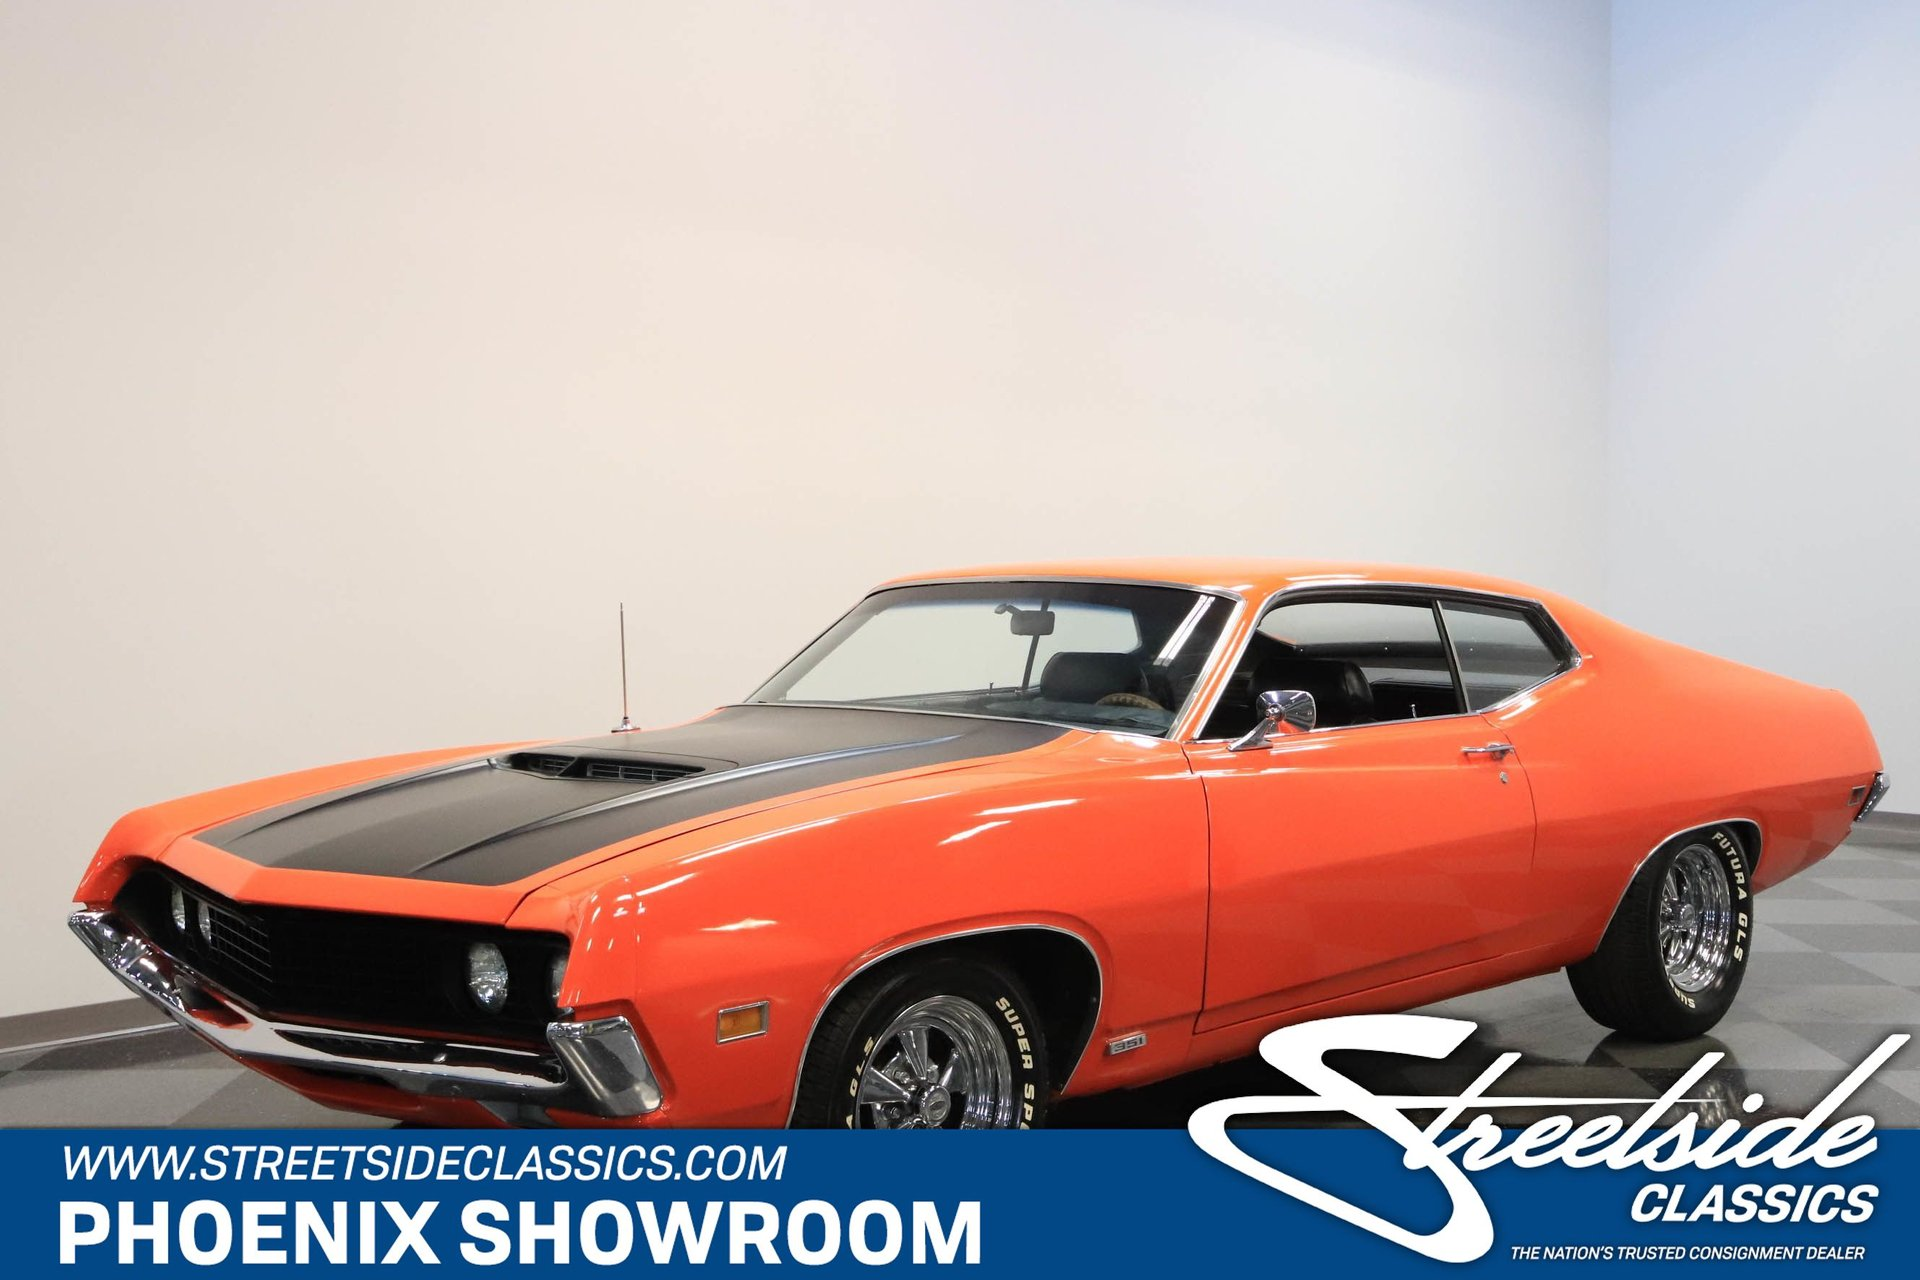 1970 Ford Torino Streetside Classics The Nations Trusted Gt Fastback For Sale Spincar View Play Video